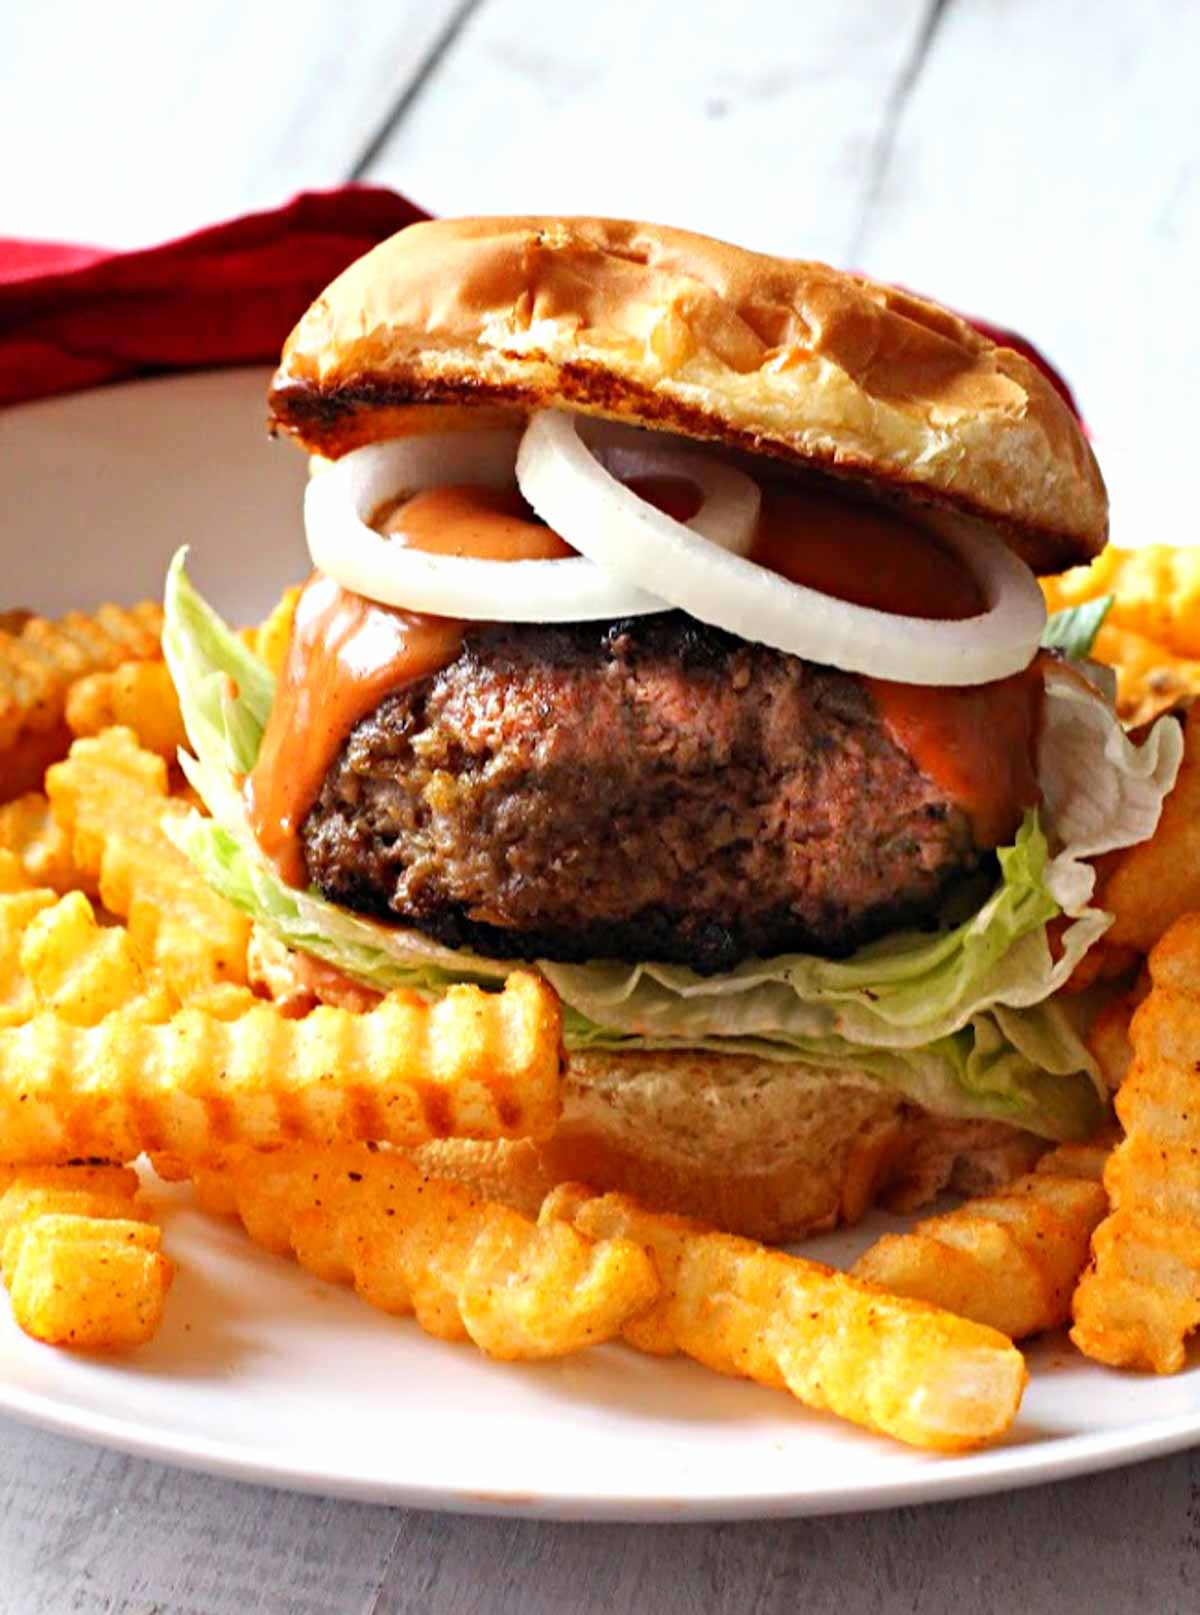 bison burger topped with sauce and onion rings, served with fries